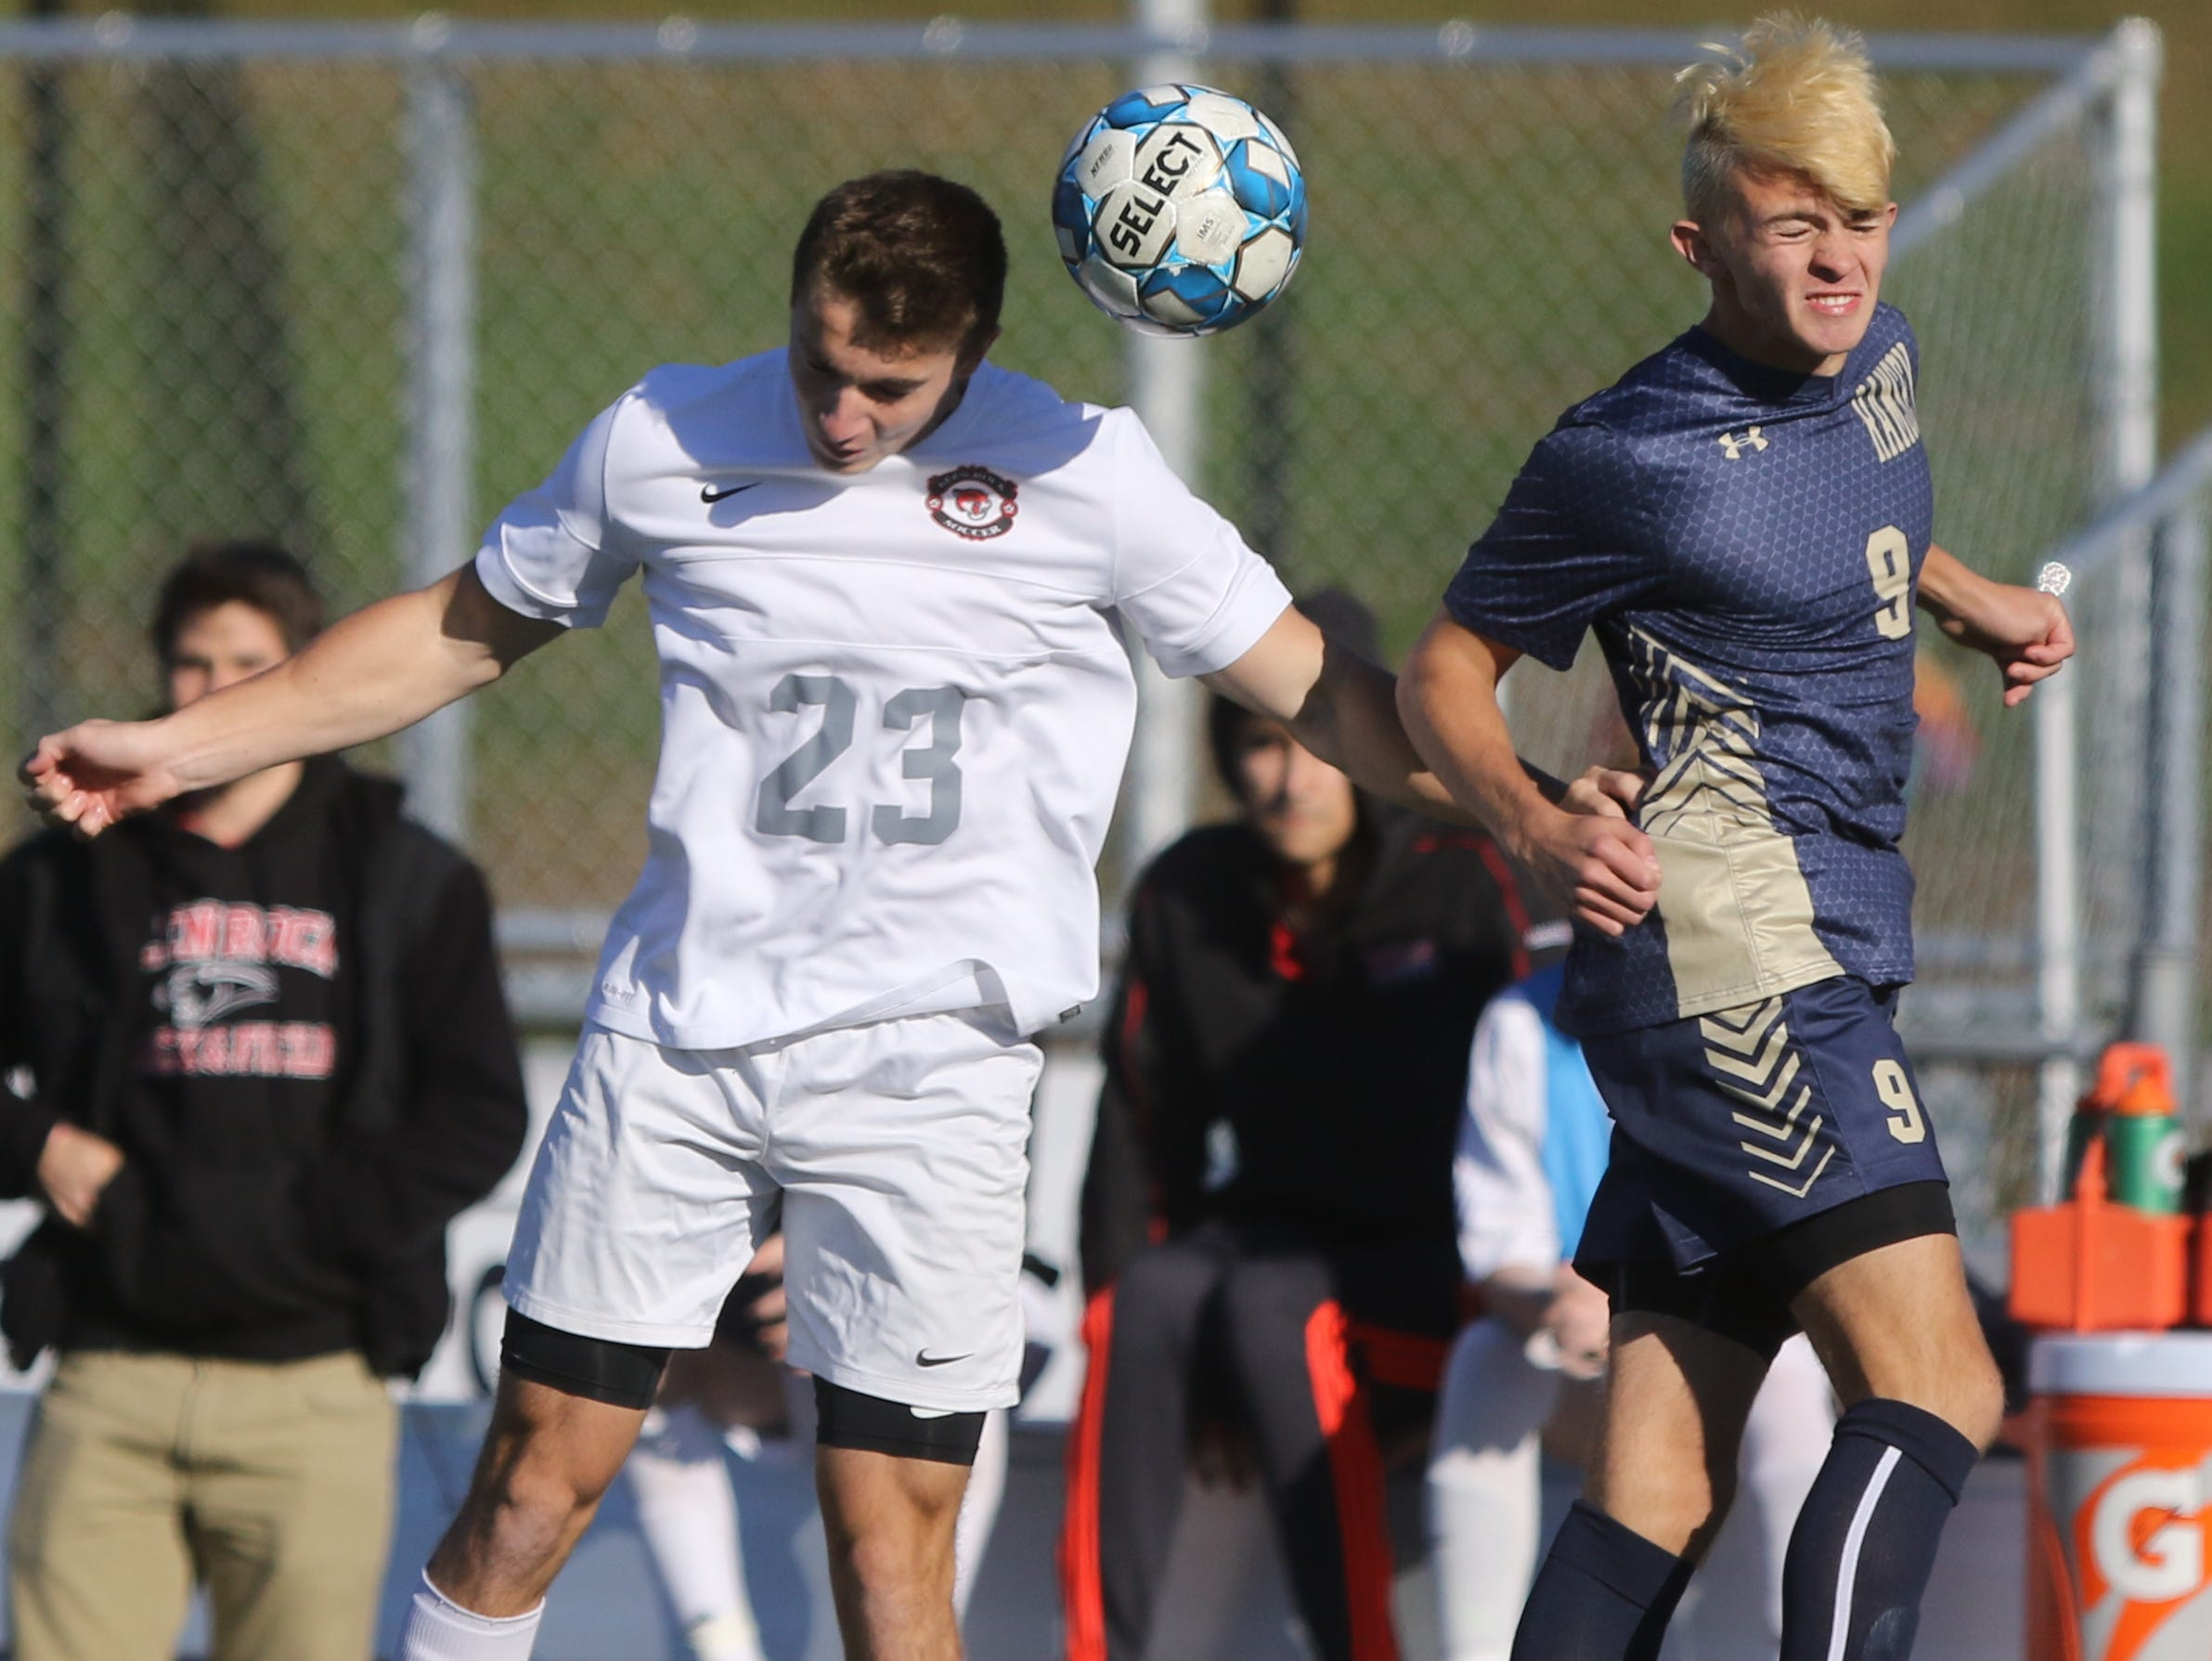 Mark Buckel of Glen Rock heads the ball in front of Alex Schneider of Ramsey in the first half.